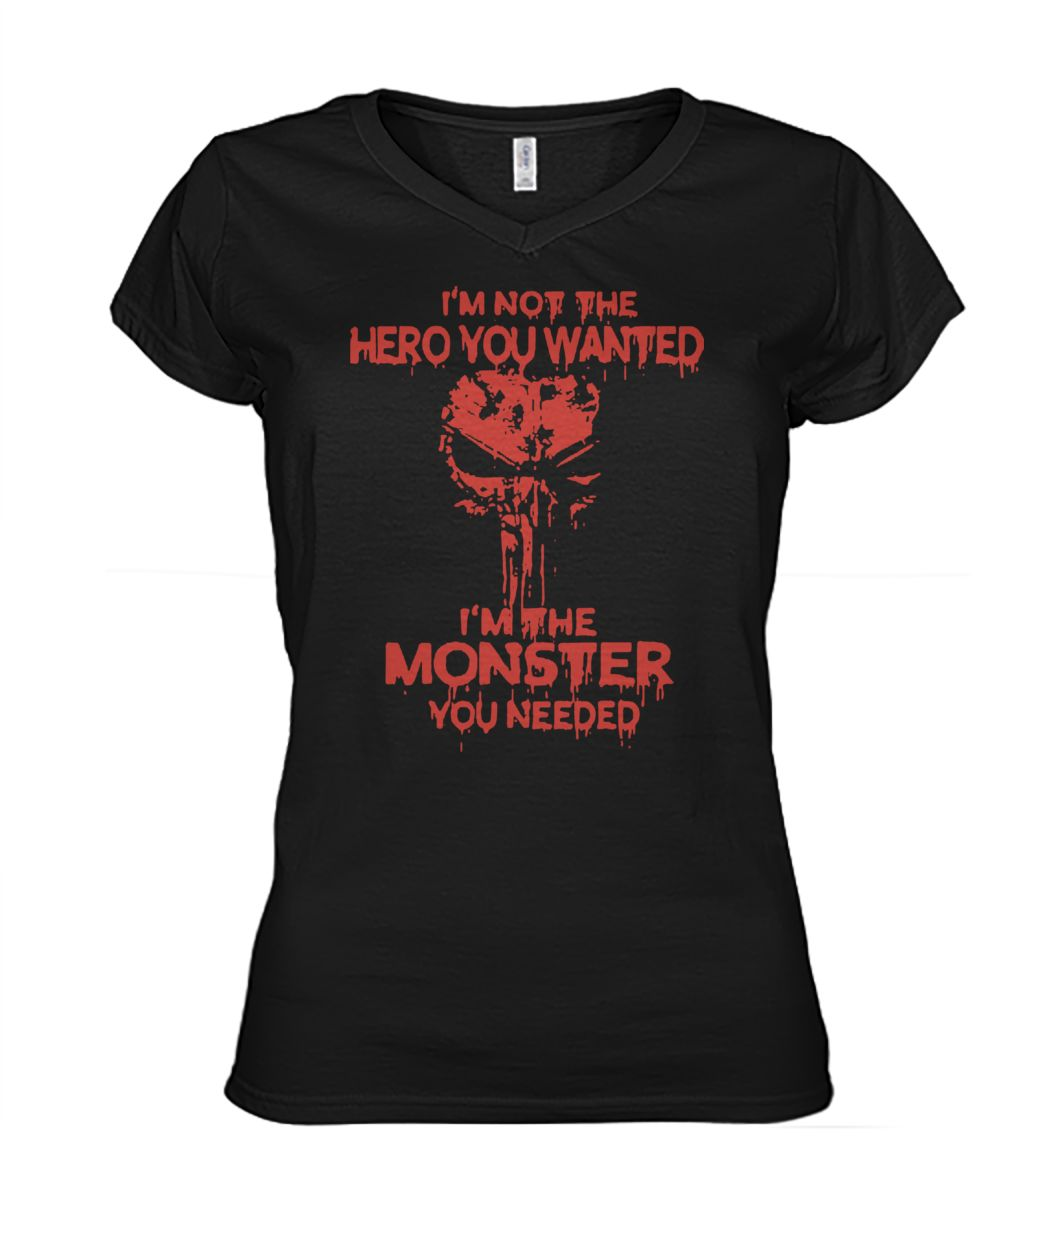 Skull I'm not the hero you wanted I'm the monster you needed women's v-neck